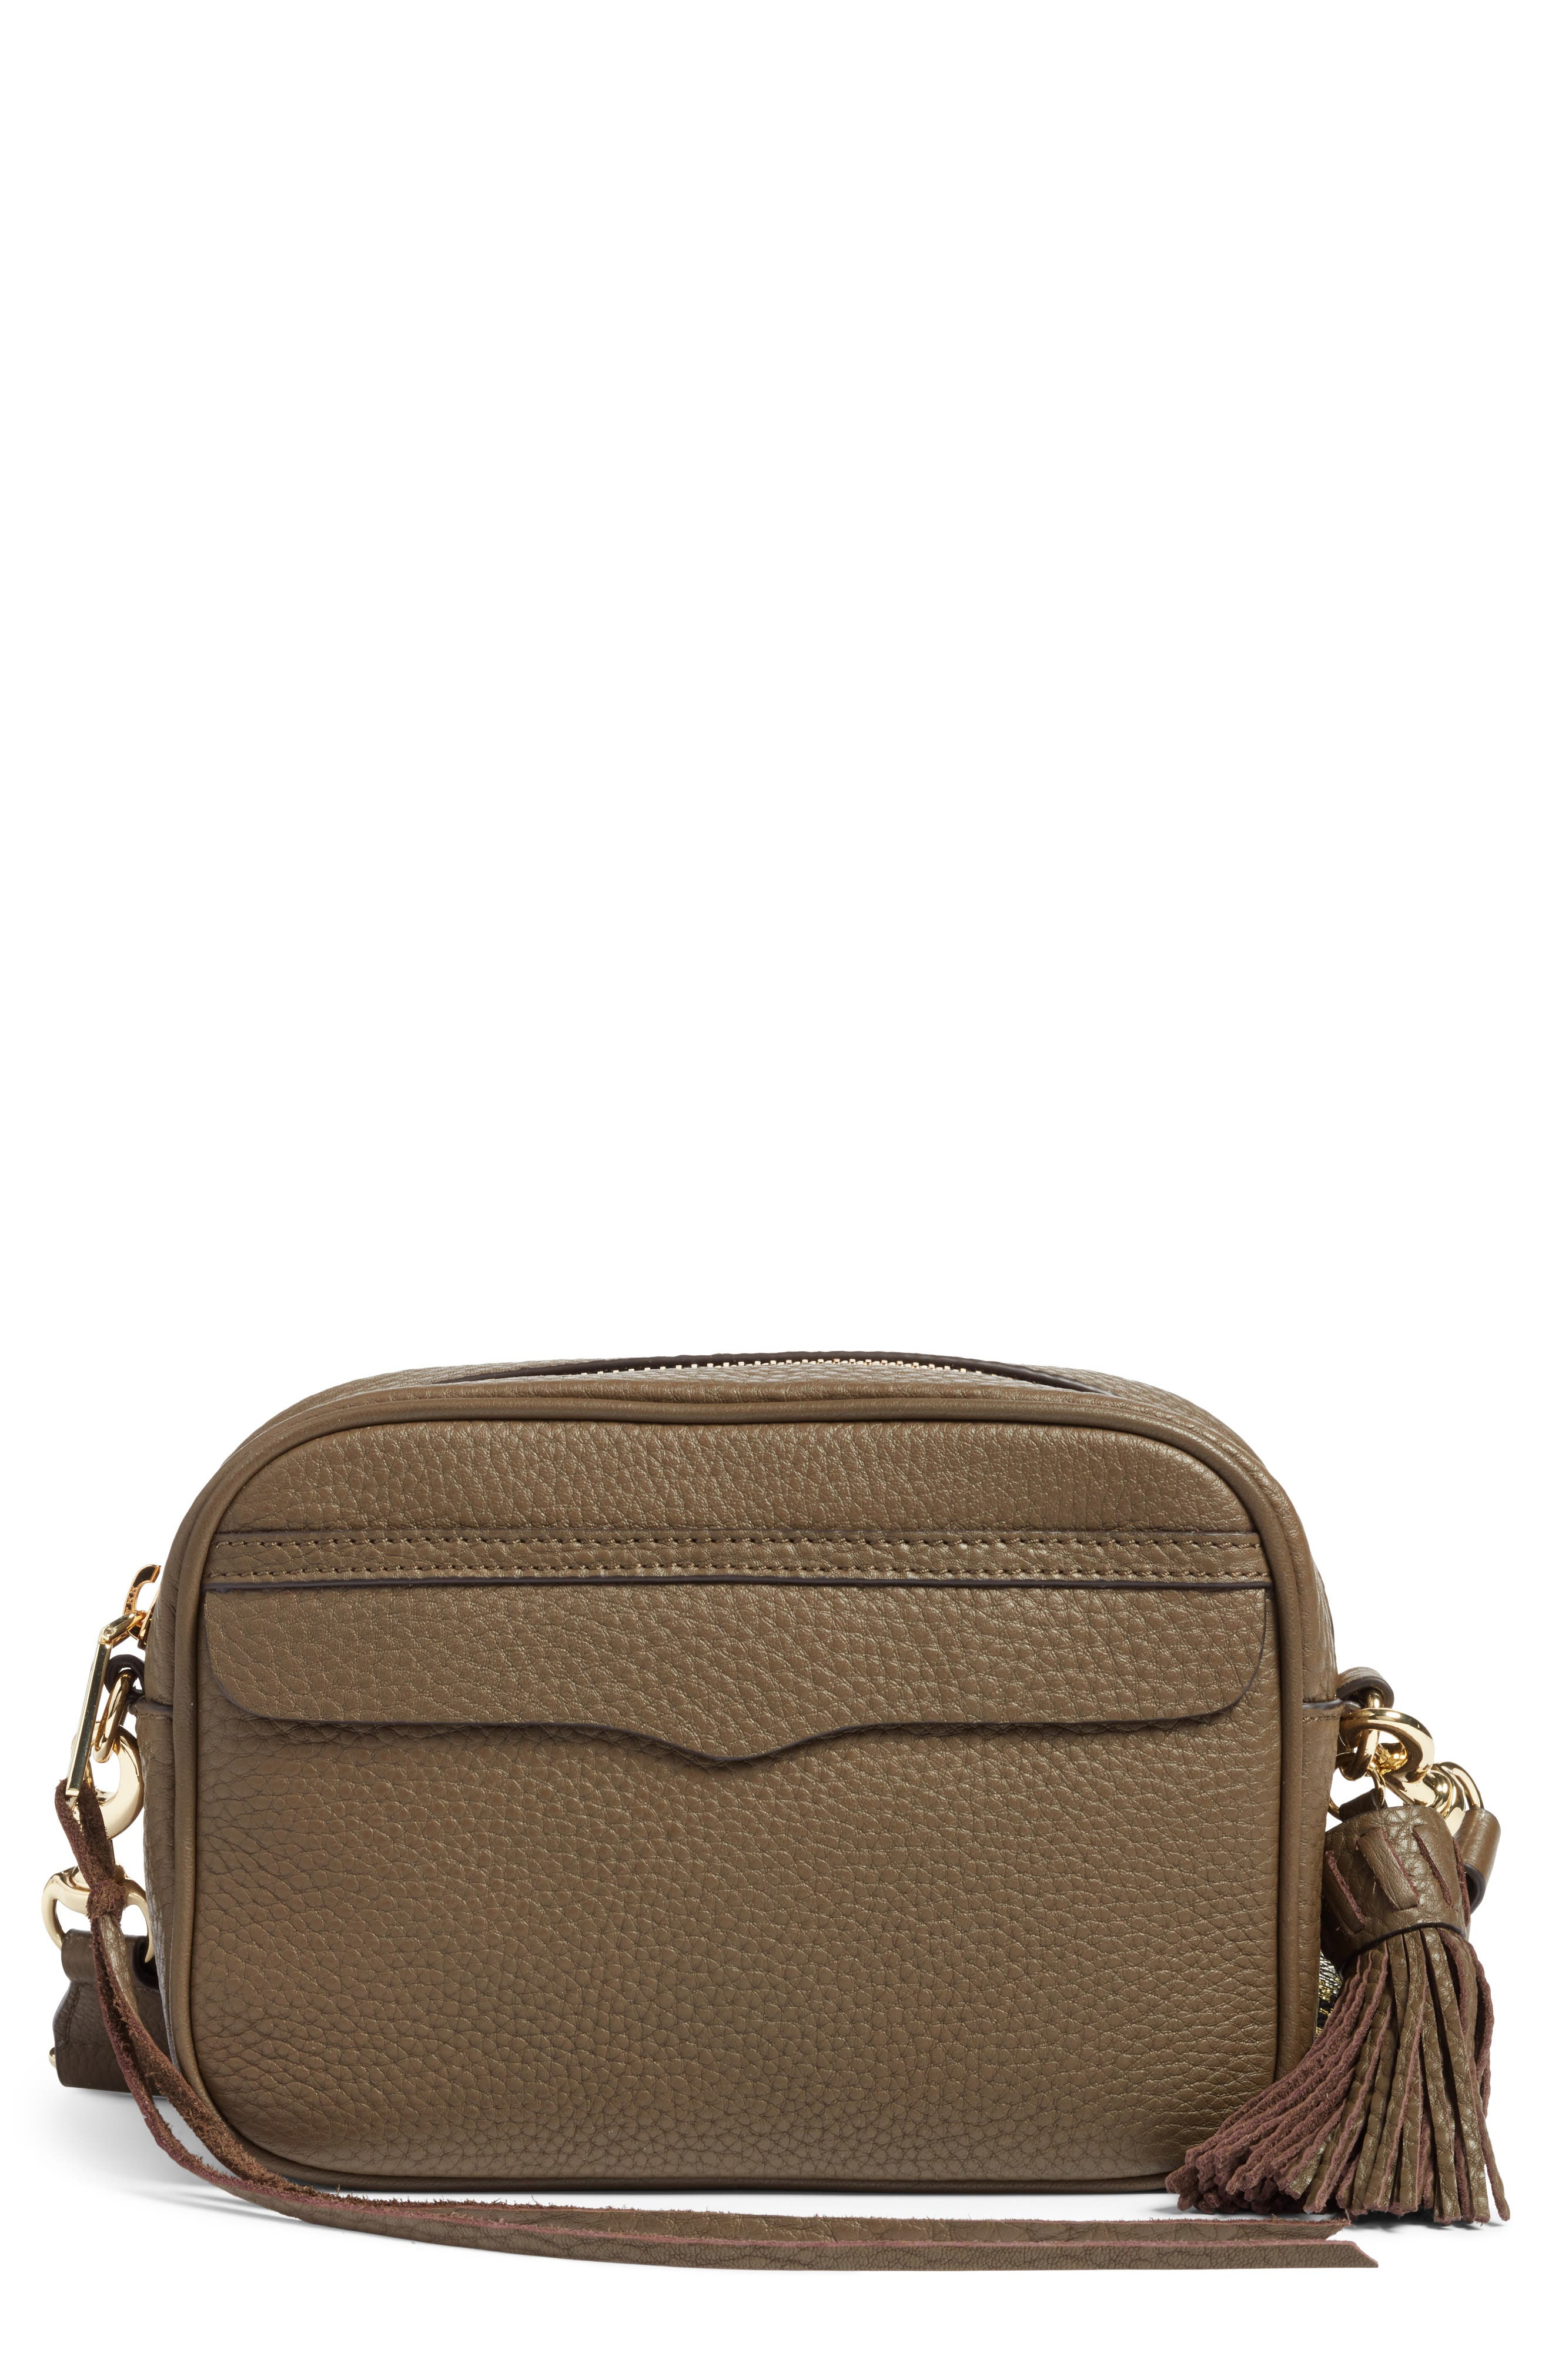 Rebecca Minkoff Leather Camera Bag with Guitar Strap (Nordstrom Exclusive)